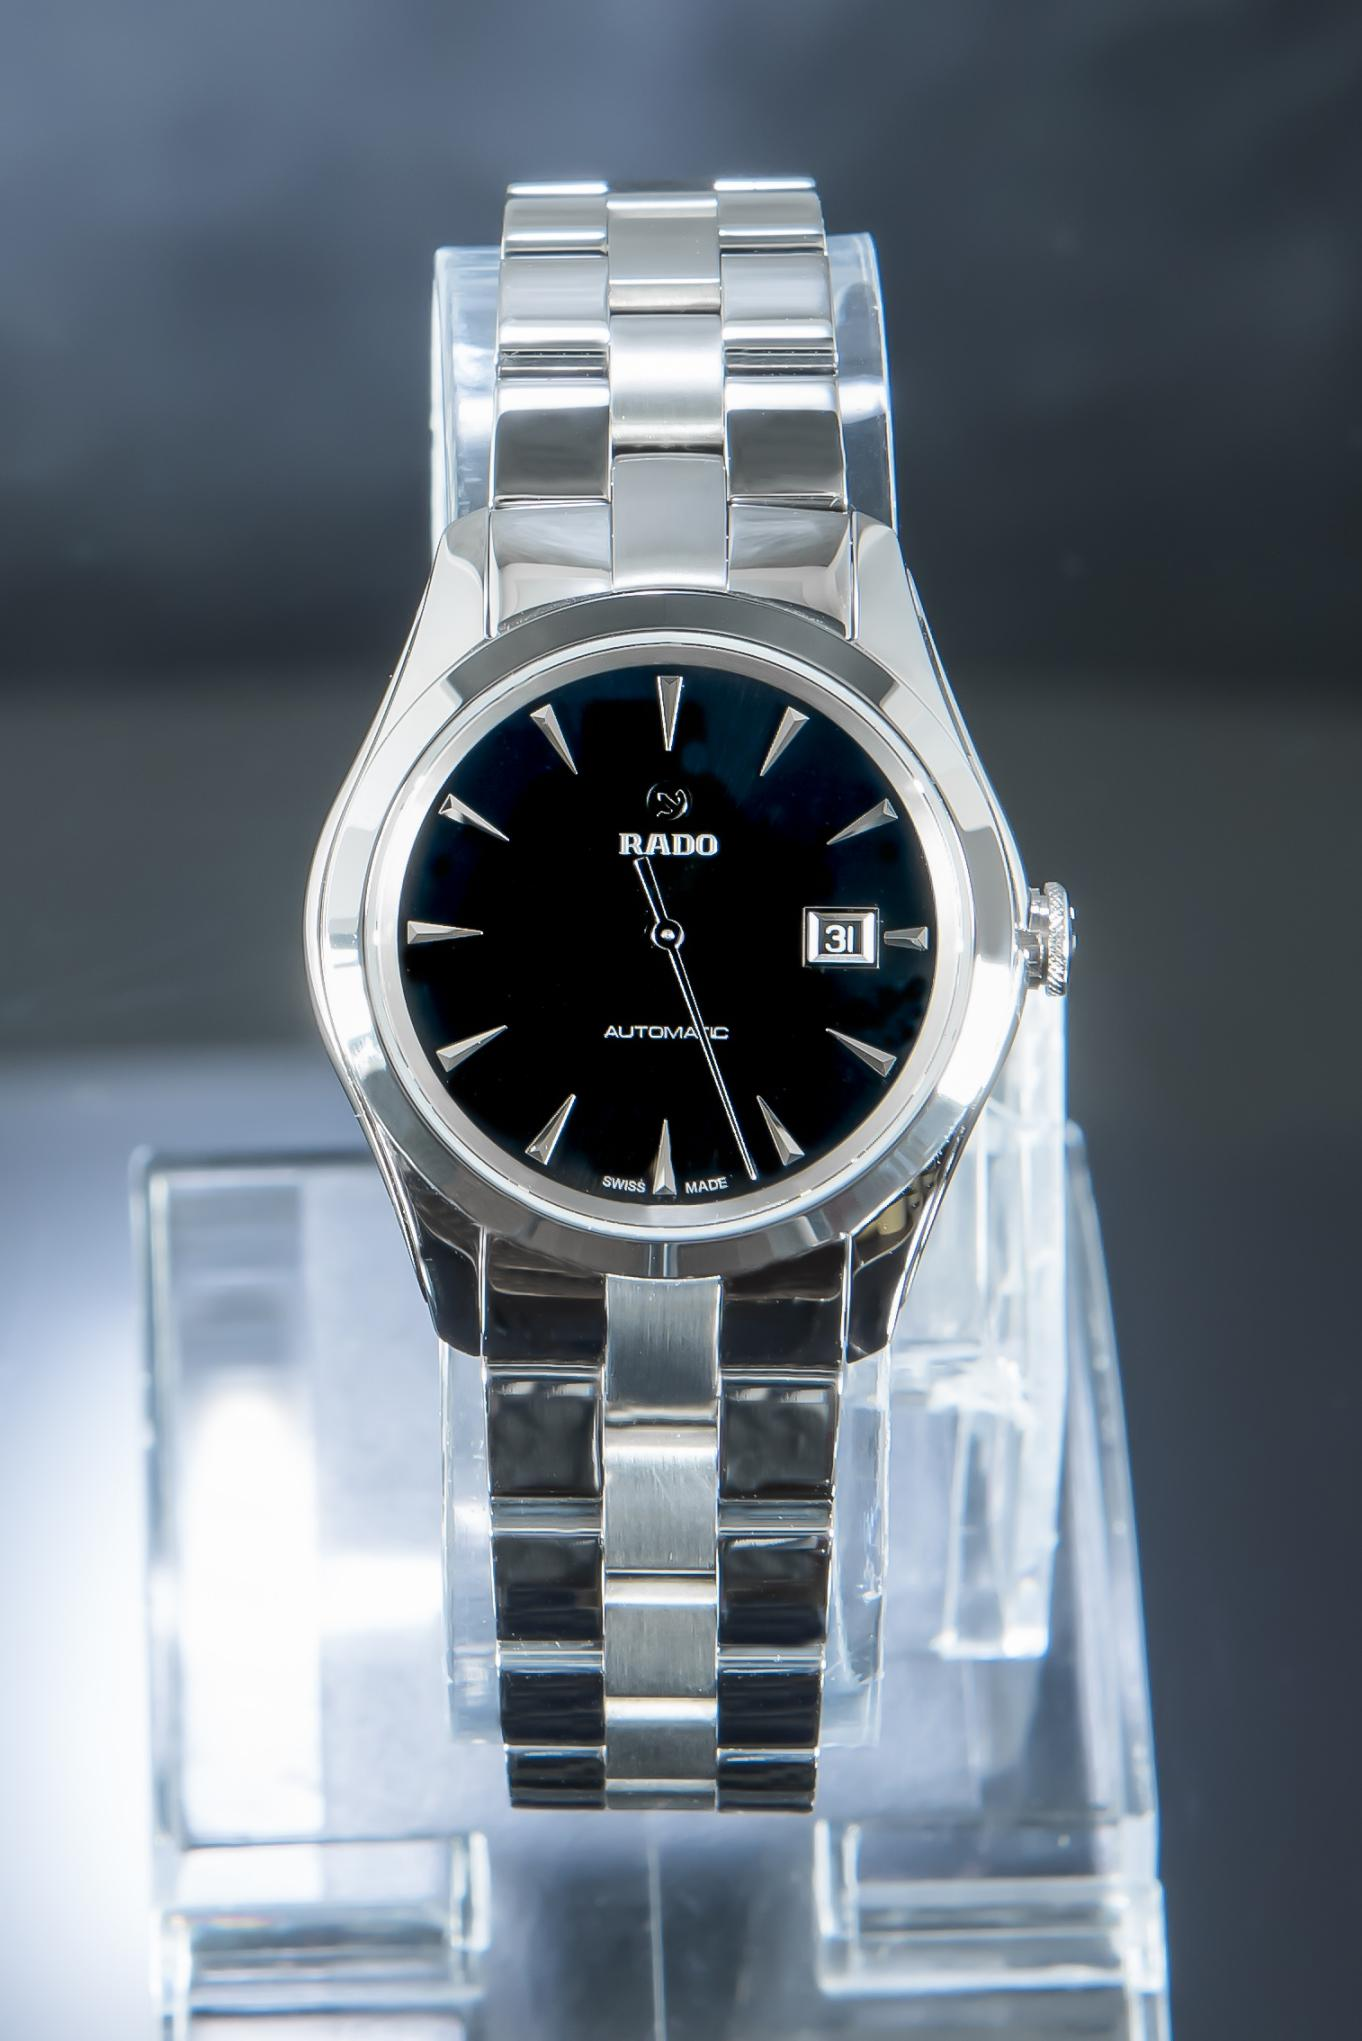 Rado HyperChrome Automatic New Ladies Collection - R3 2091163